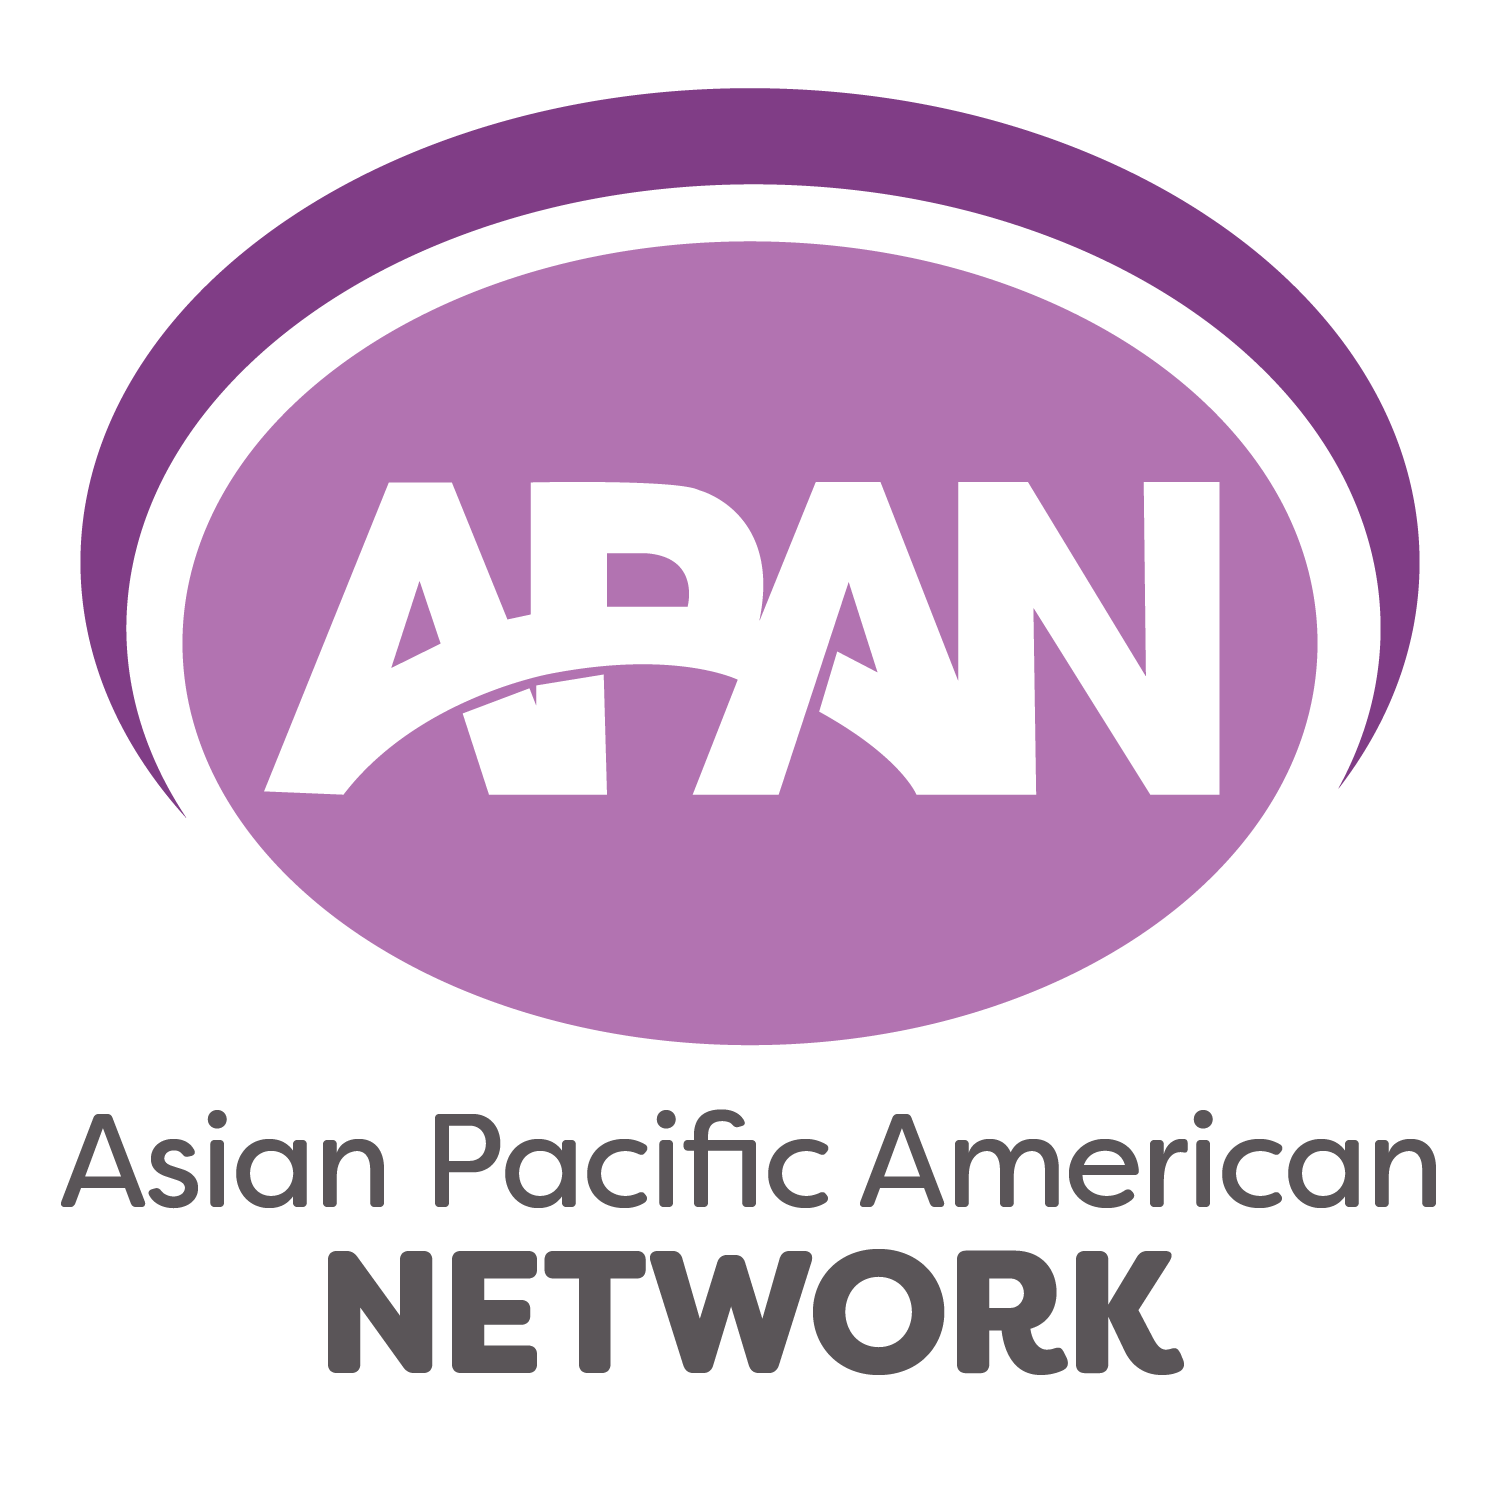 Asian Pacific American Network logo